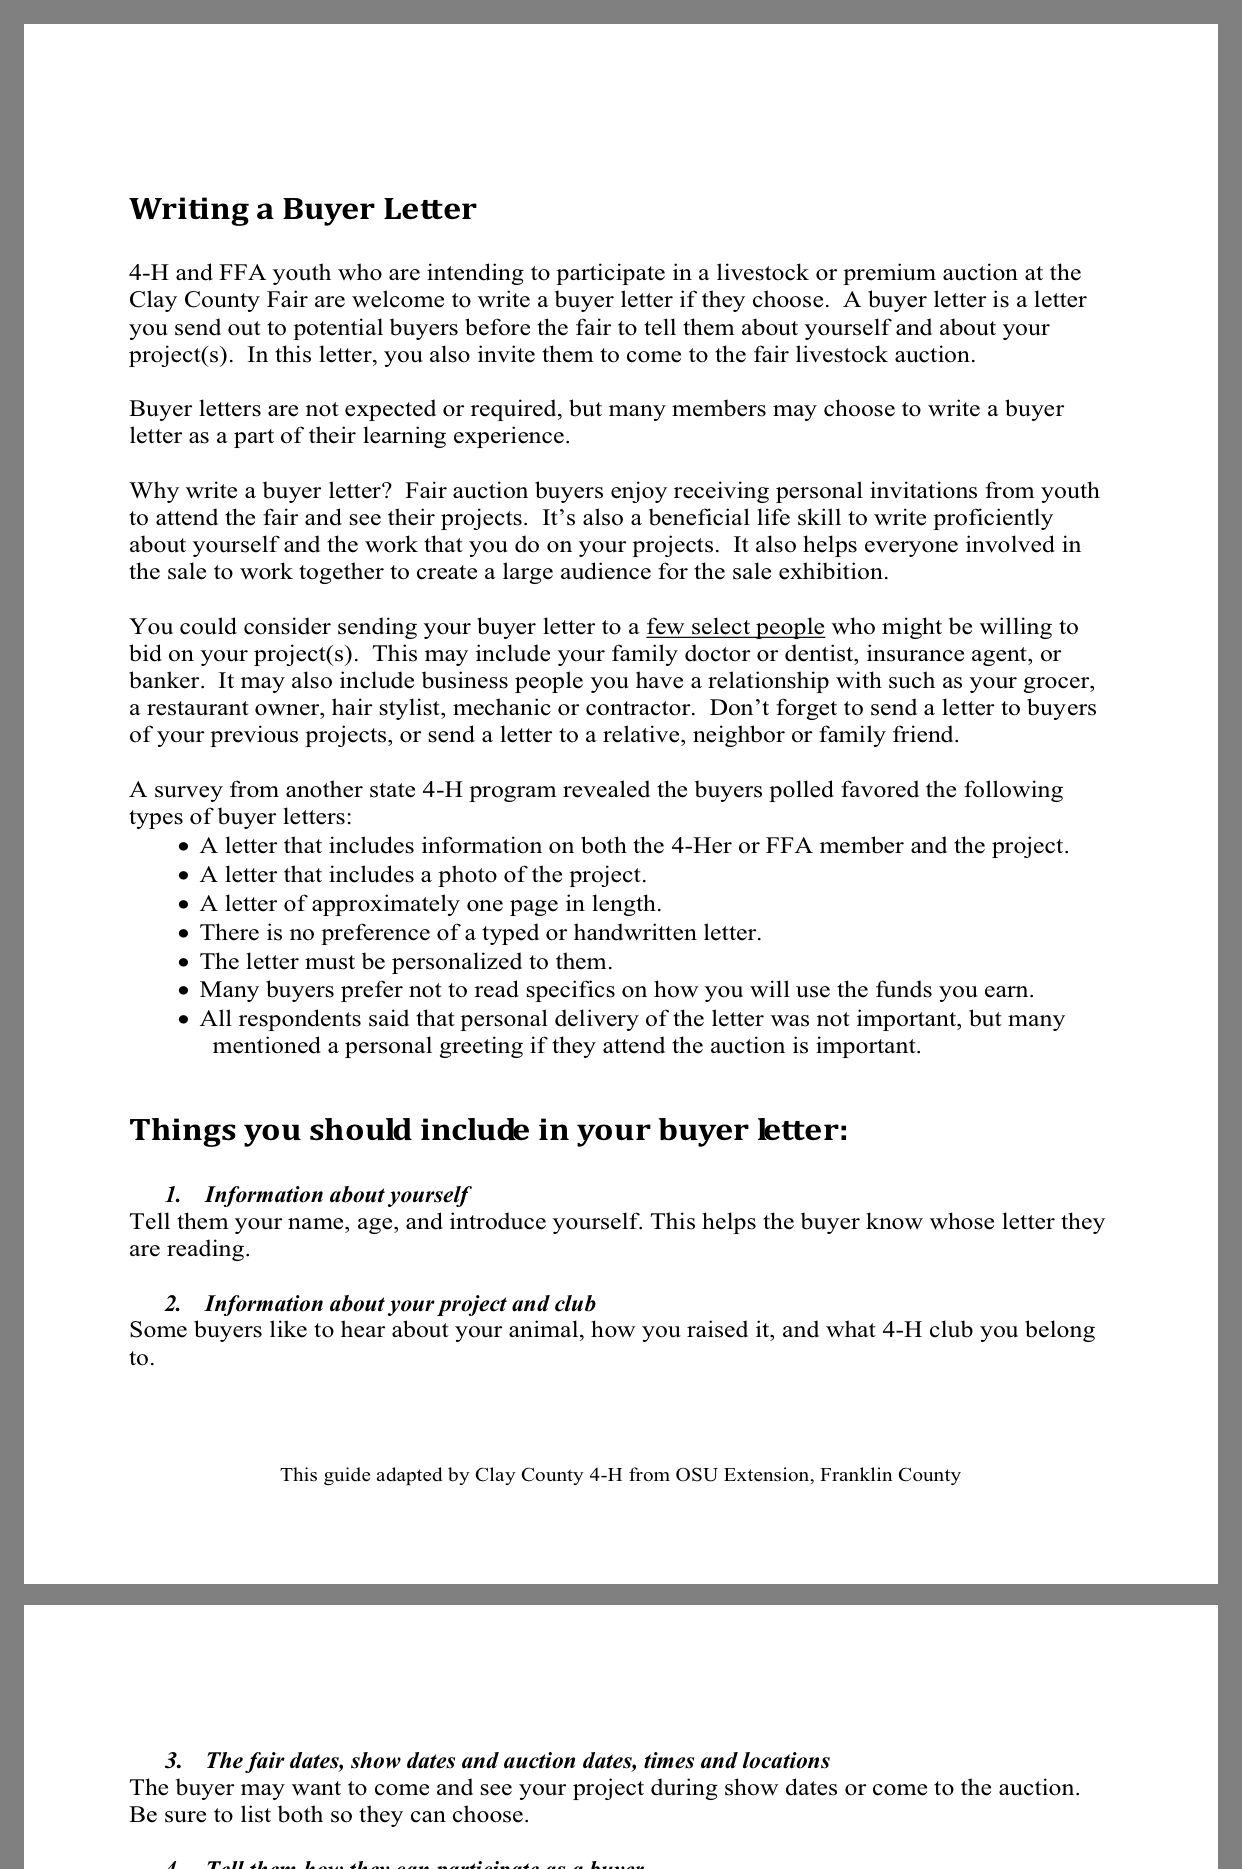 Pin By Caitlyn Hanover On Buyer Letters